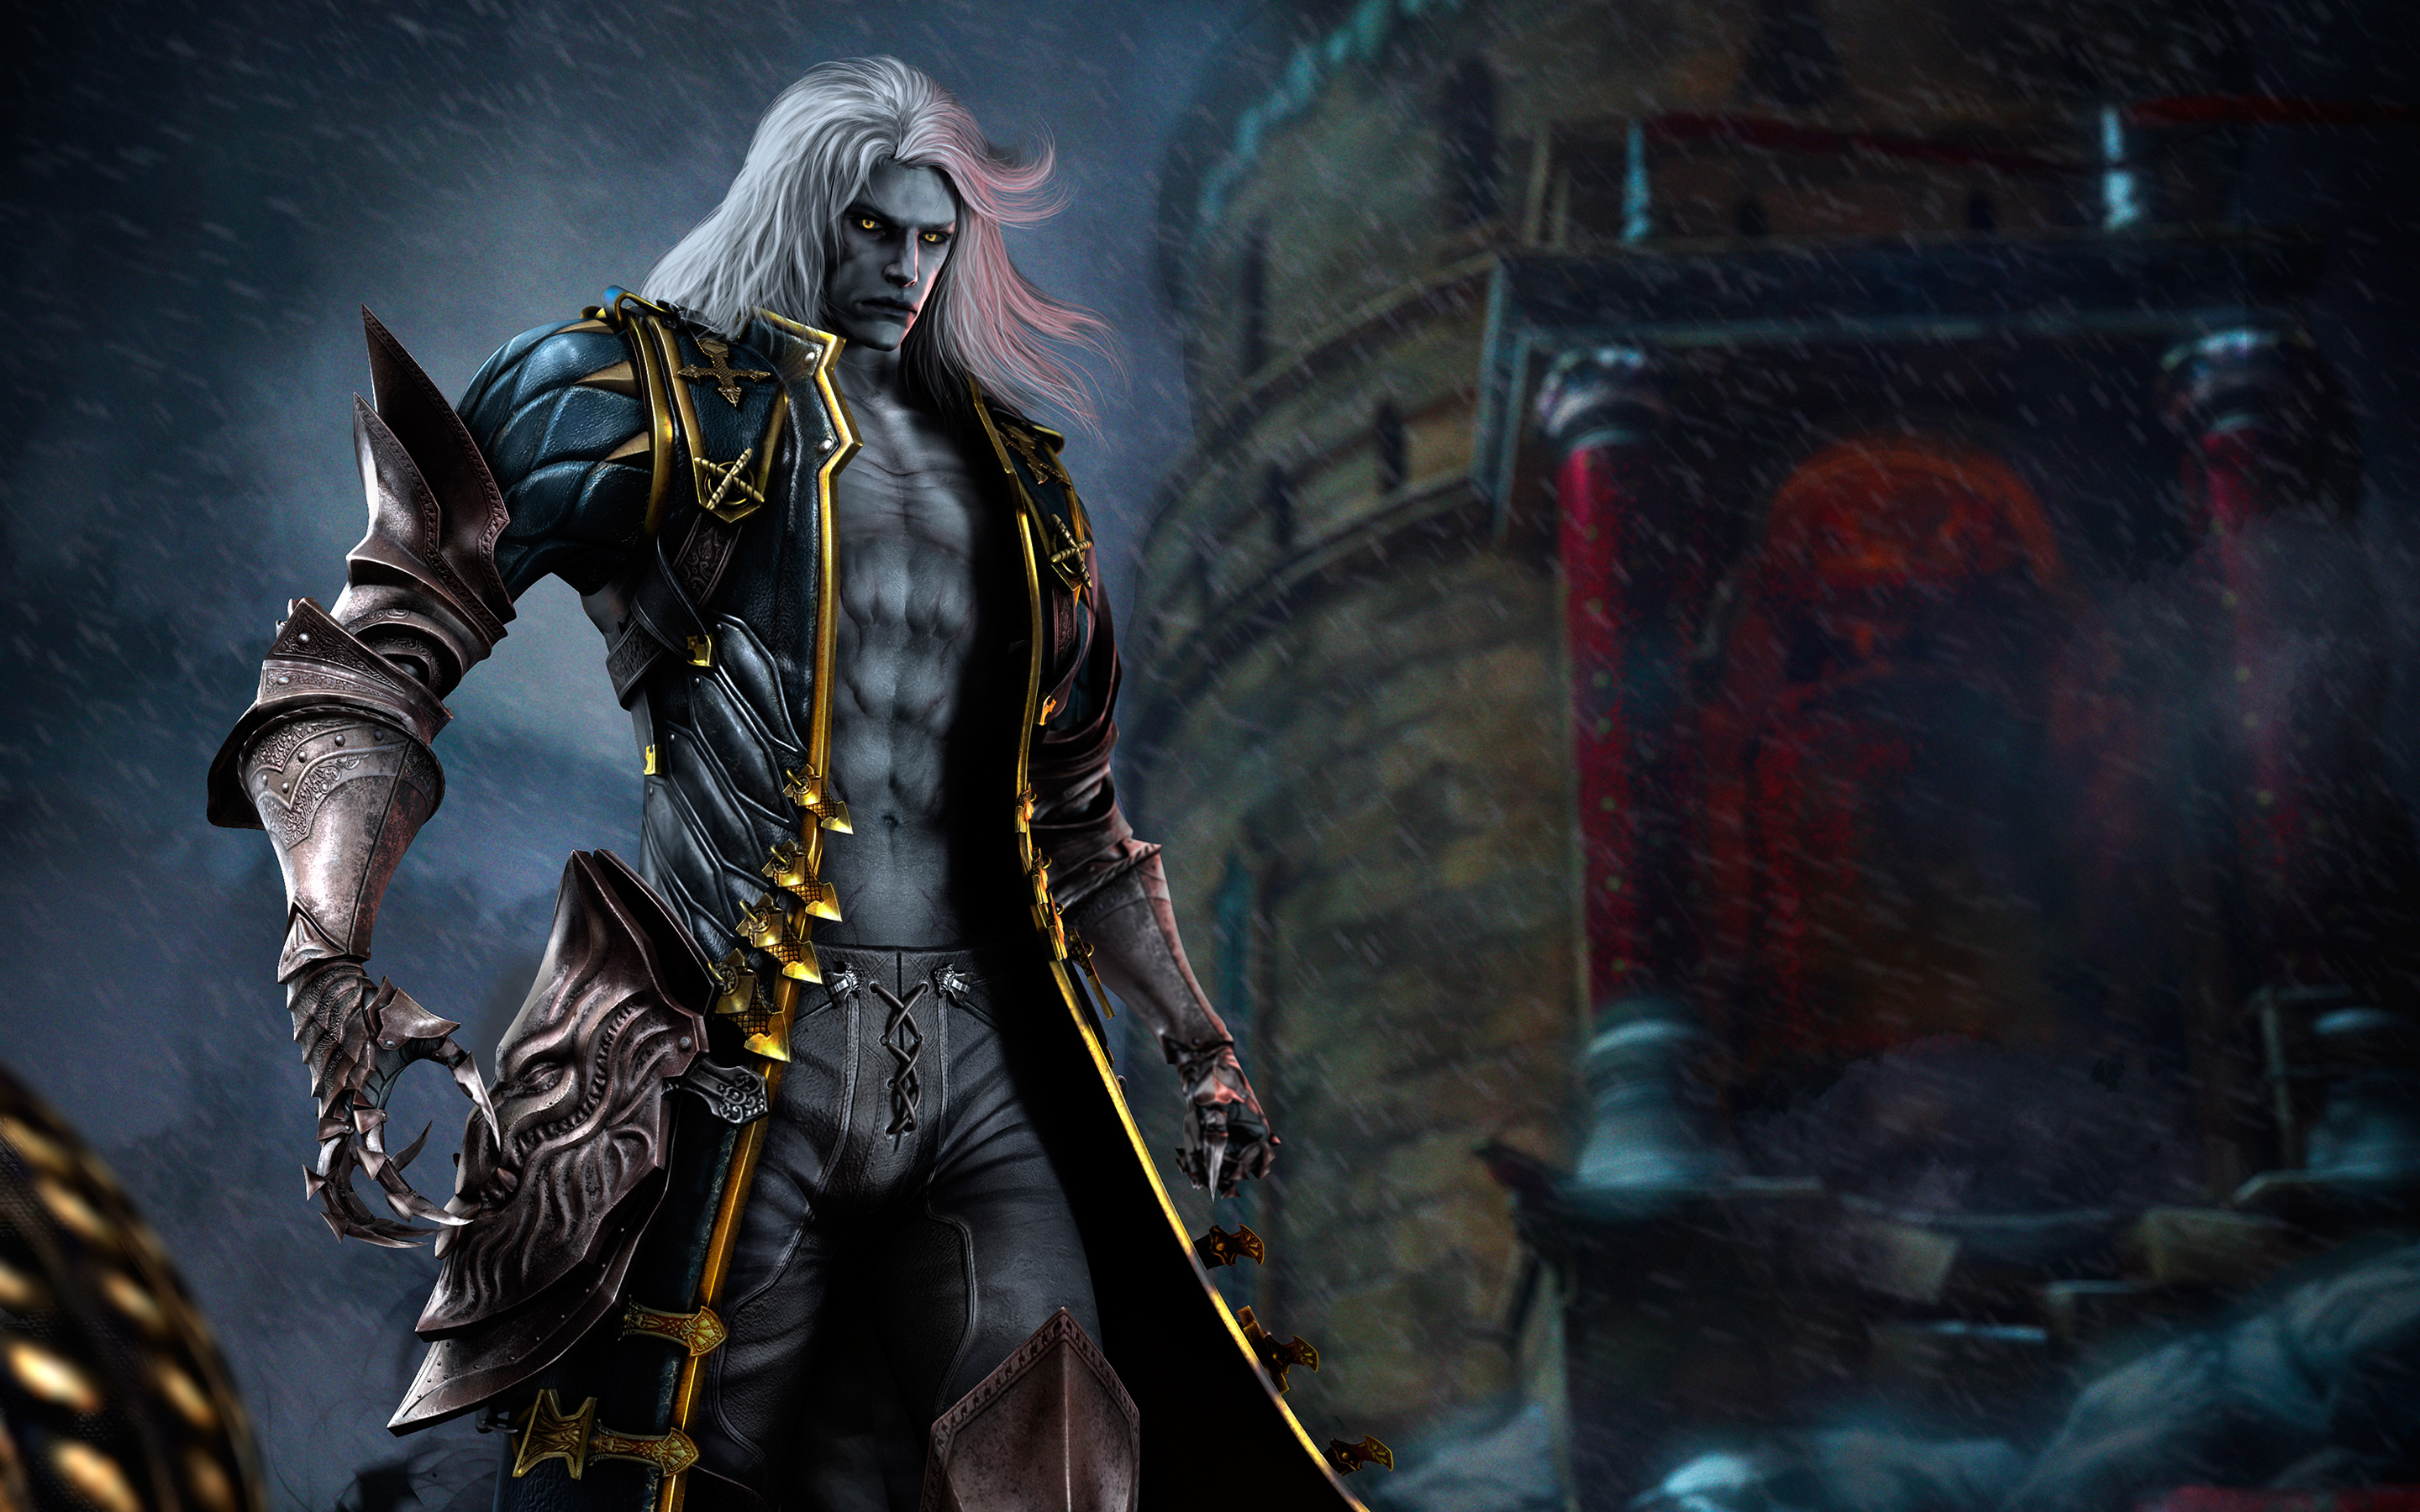 Castlevania 4k Wallpapers For Your Desktop Or Mobile Screen Free And Easy To Download